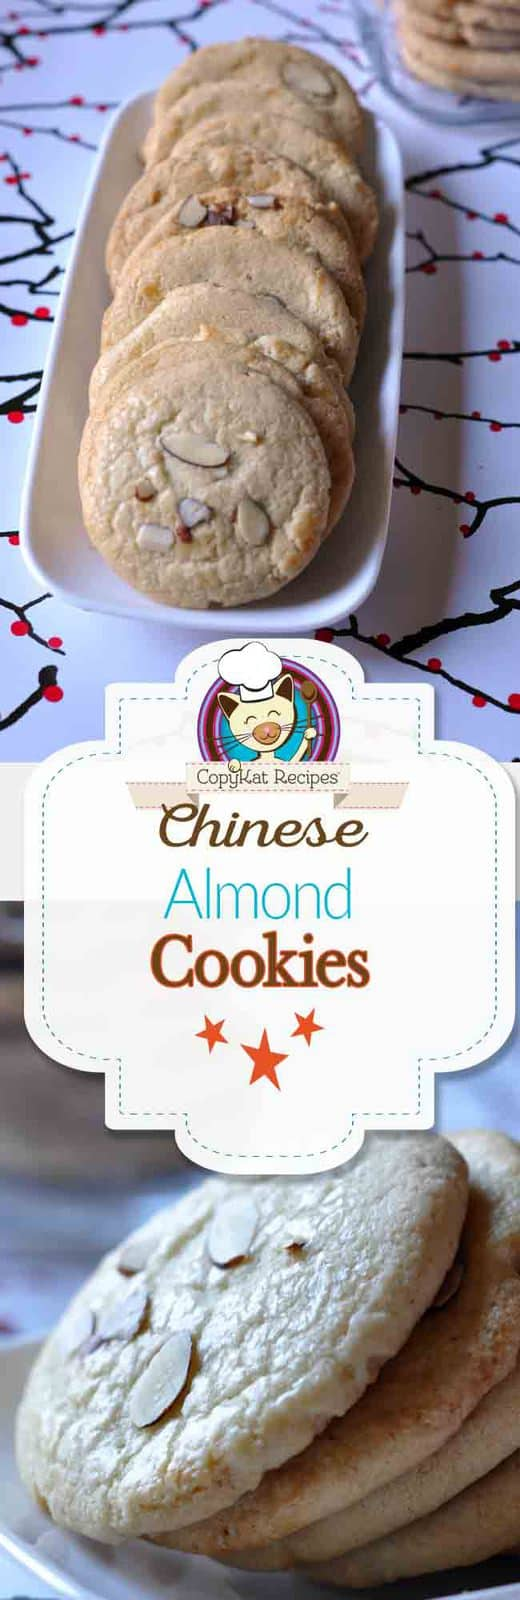 Make your own delicious Chinese Almond Cookies with this recipe from CopyKat.com.